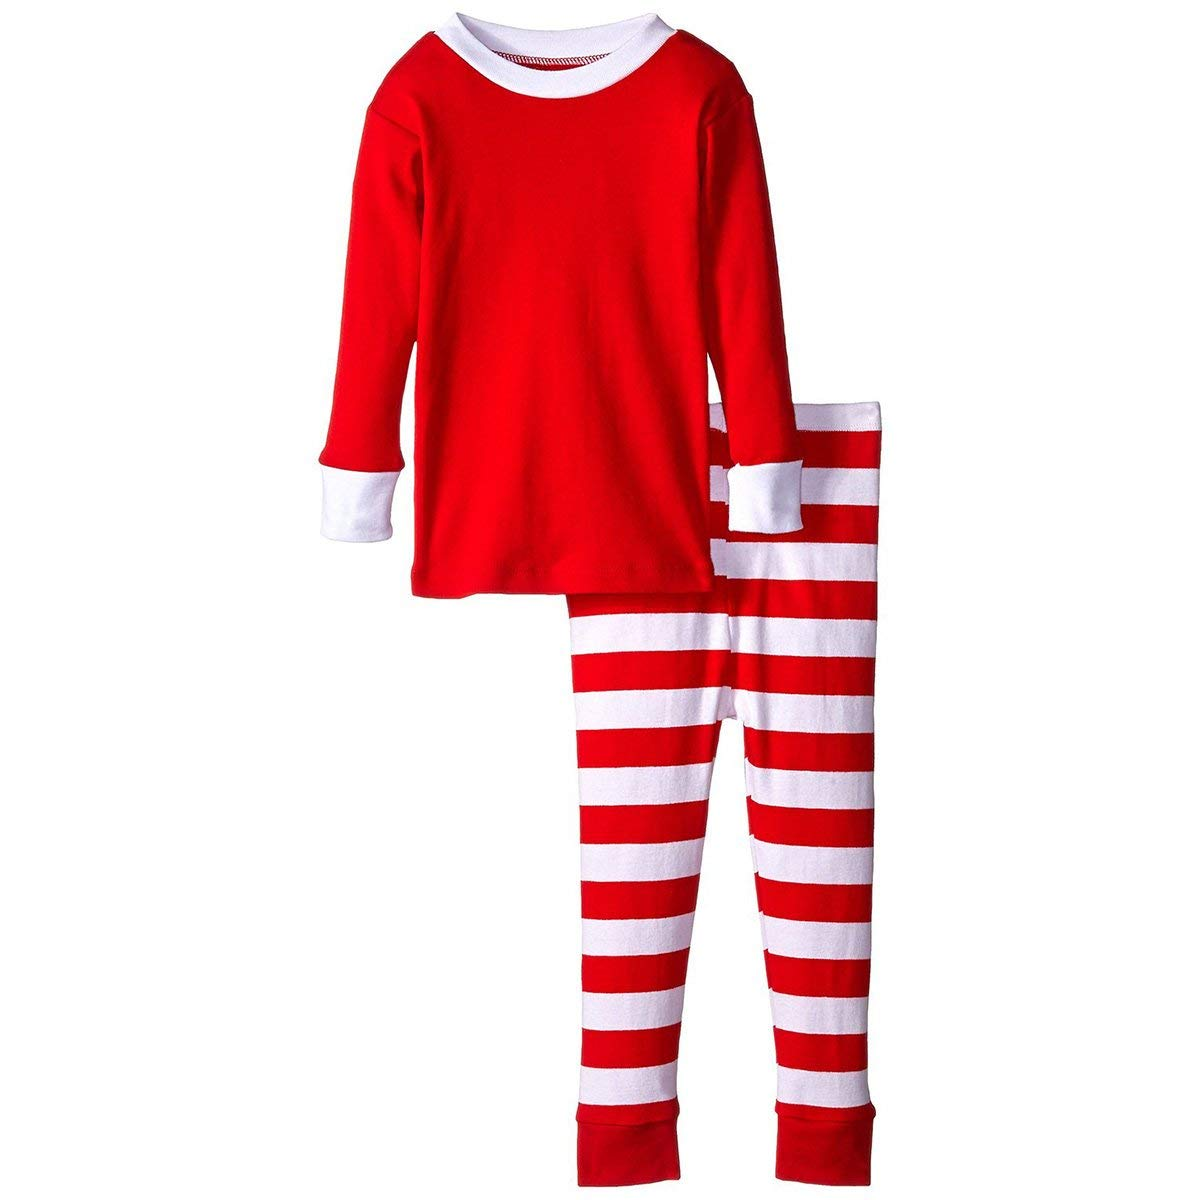 3ddc44f065 Get Quotations · LAPAYA Boy s Holiday Pajamas Two Piece Christmas Cotton  2-7 Years Toddler Pj Set